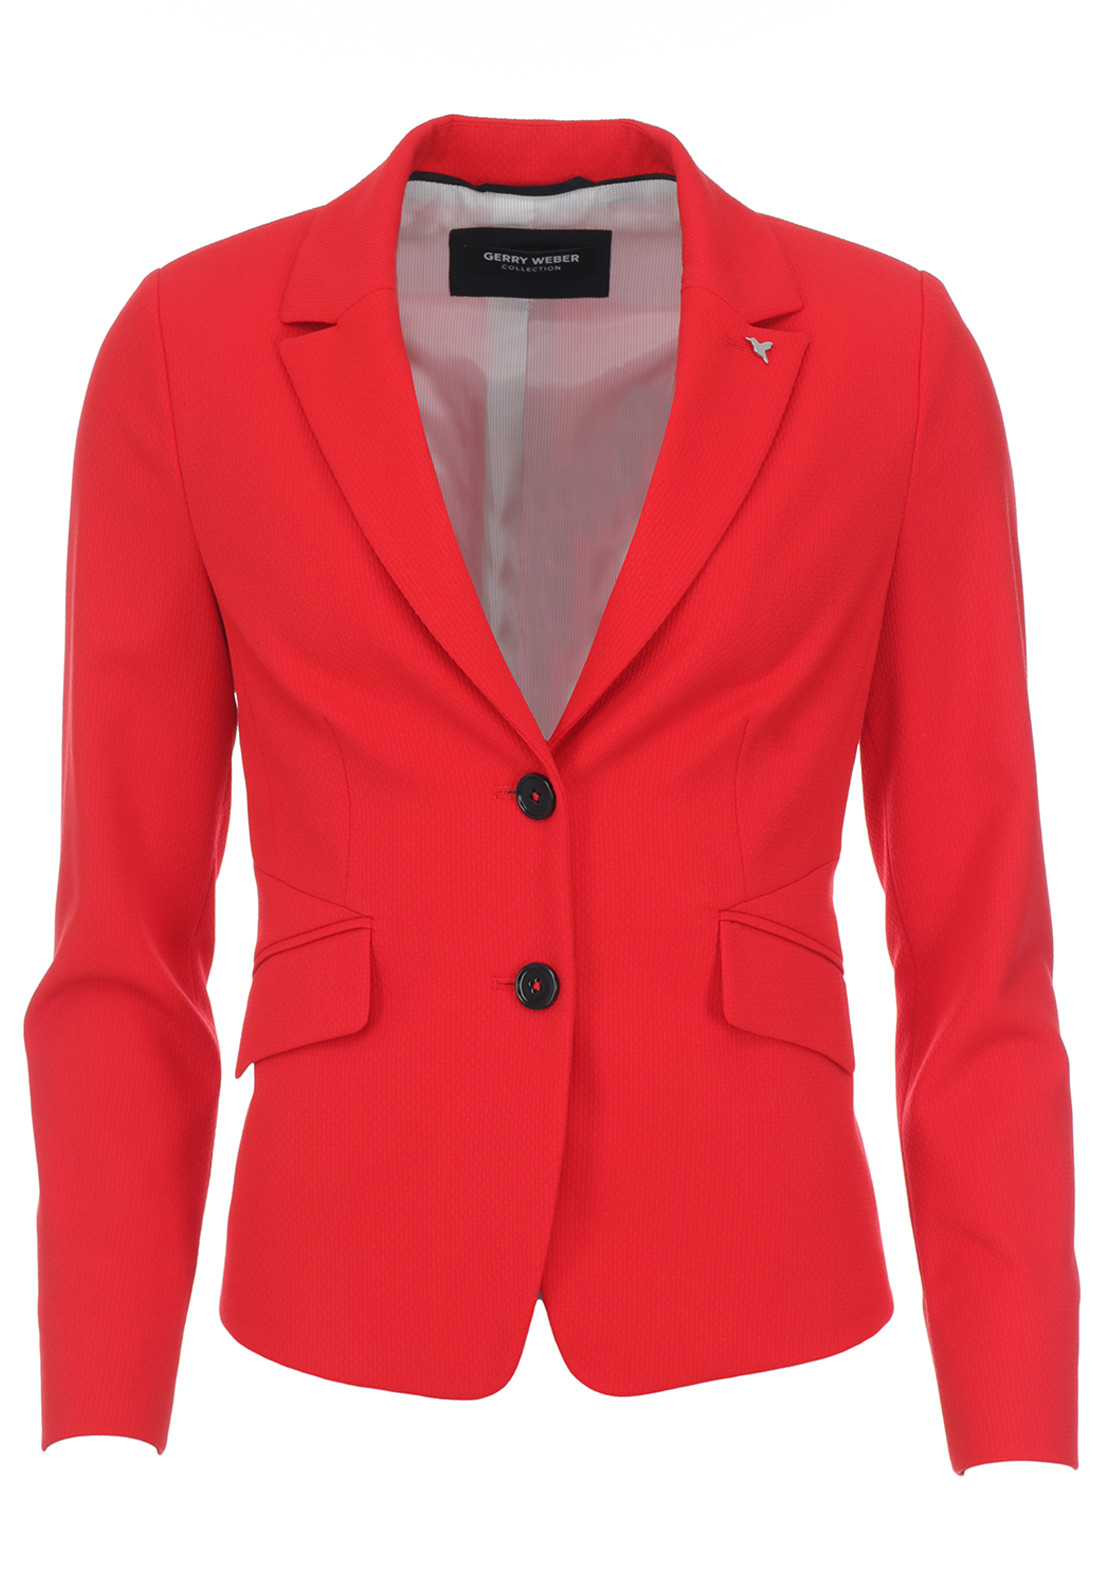 Gerry Weber Textured Blazer Jacket, Red